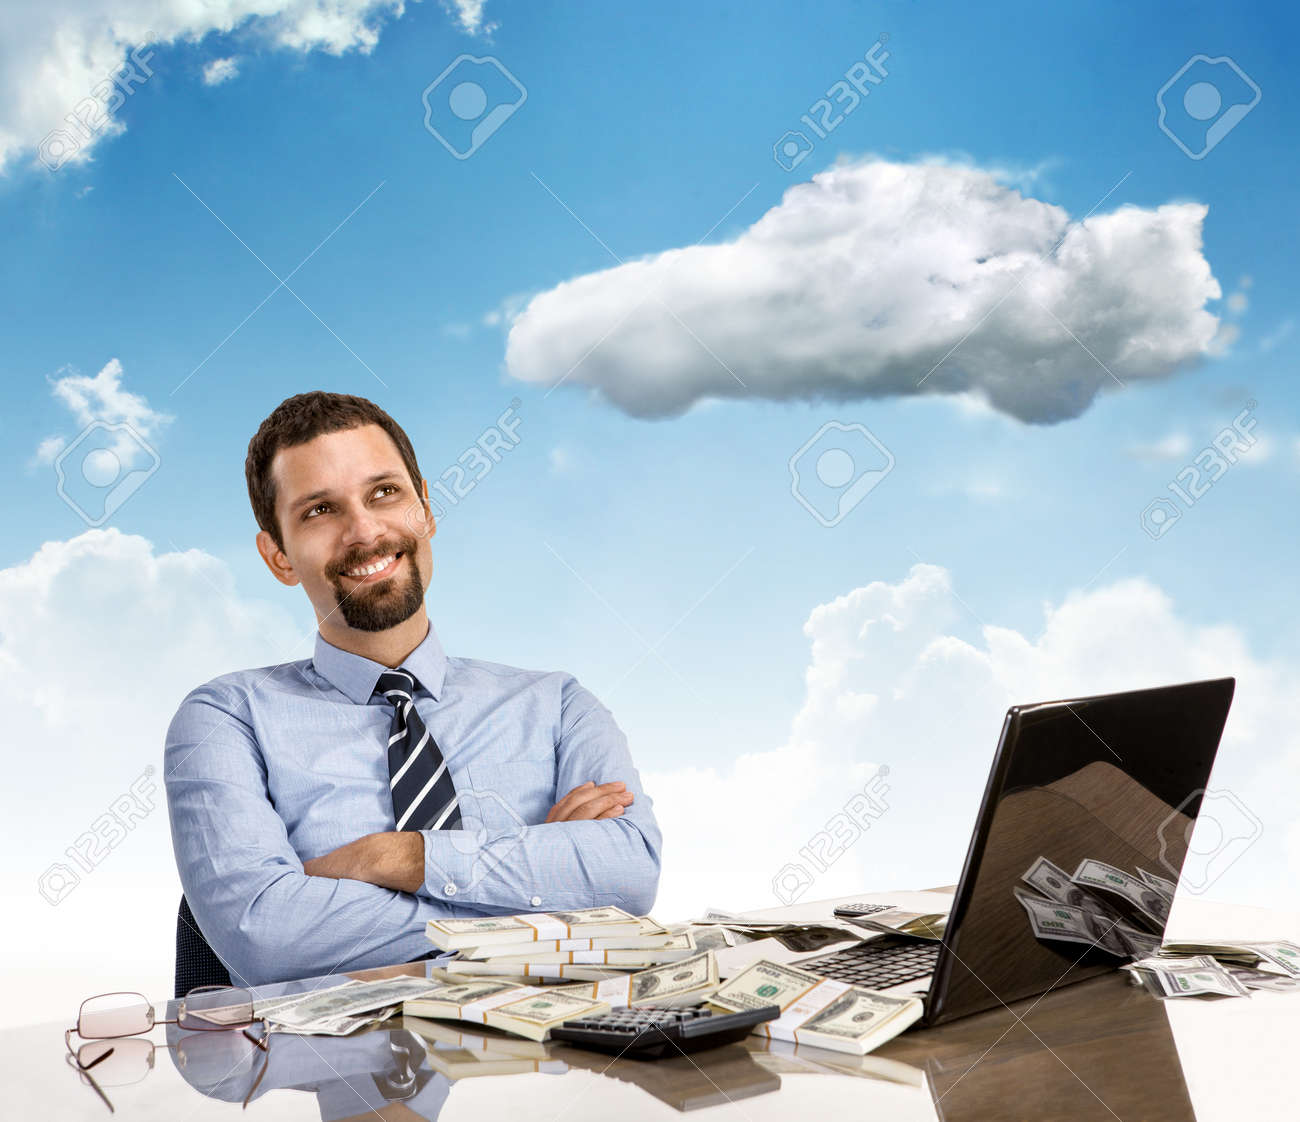 Daydreaming Businessman With Arms Crossed Cheerful And Successful